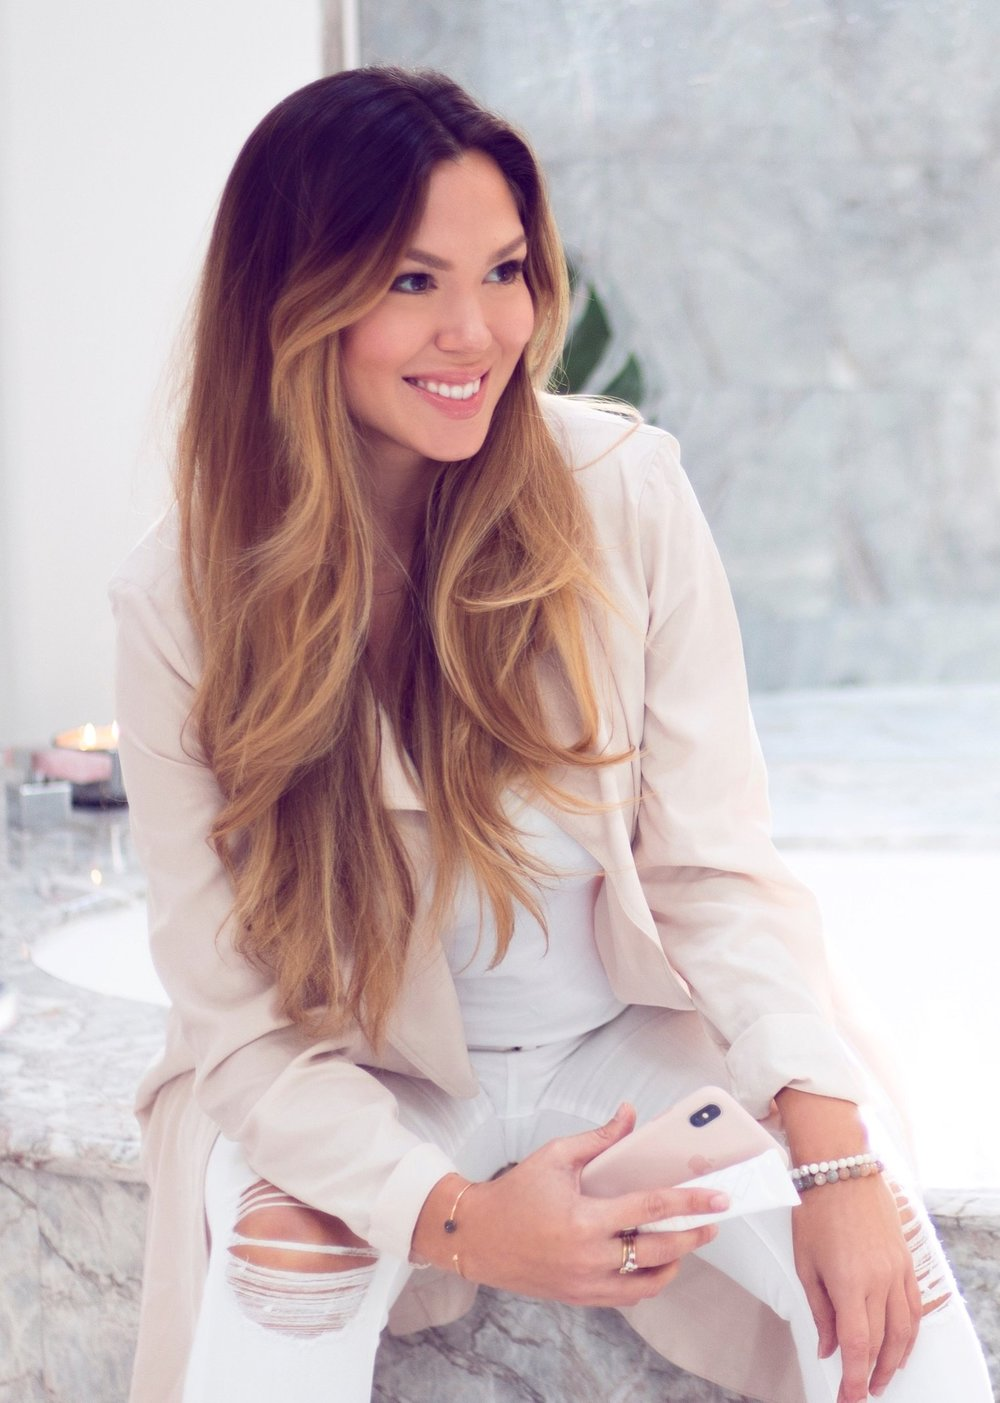 about MADELEINE - I'm born and raised in Sweden and grew up dreaming of moving to the US. I fulfilled that dream after high school by attending college in Los Angeles and then transferred to Florida a few years later. I've owned businesses since I was 17 years old and though I tried the corporate world, it wasn't for me ;) I hope to reach a level where I can inspire women to be brave and to just go for it. To not let the past stop them from reaching for the stars - I am proof that anything is possible and your past should only serve one purpose - to make you STRONGER!instagram: @agirlcancope, @madxnaturewebsite: WWW.MADBYNATURE.COM